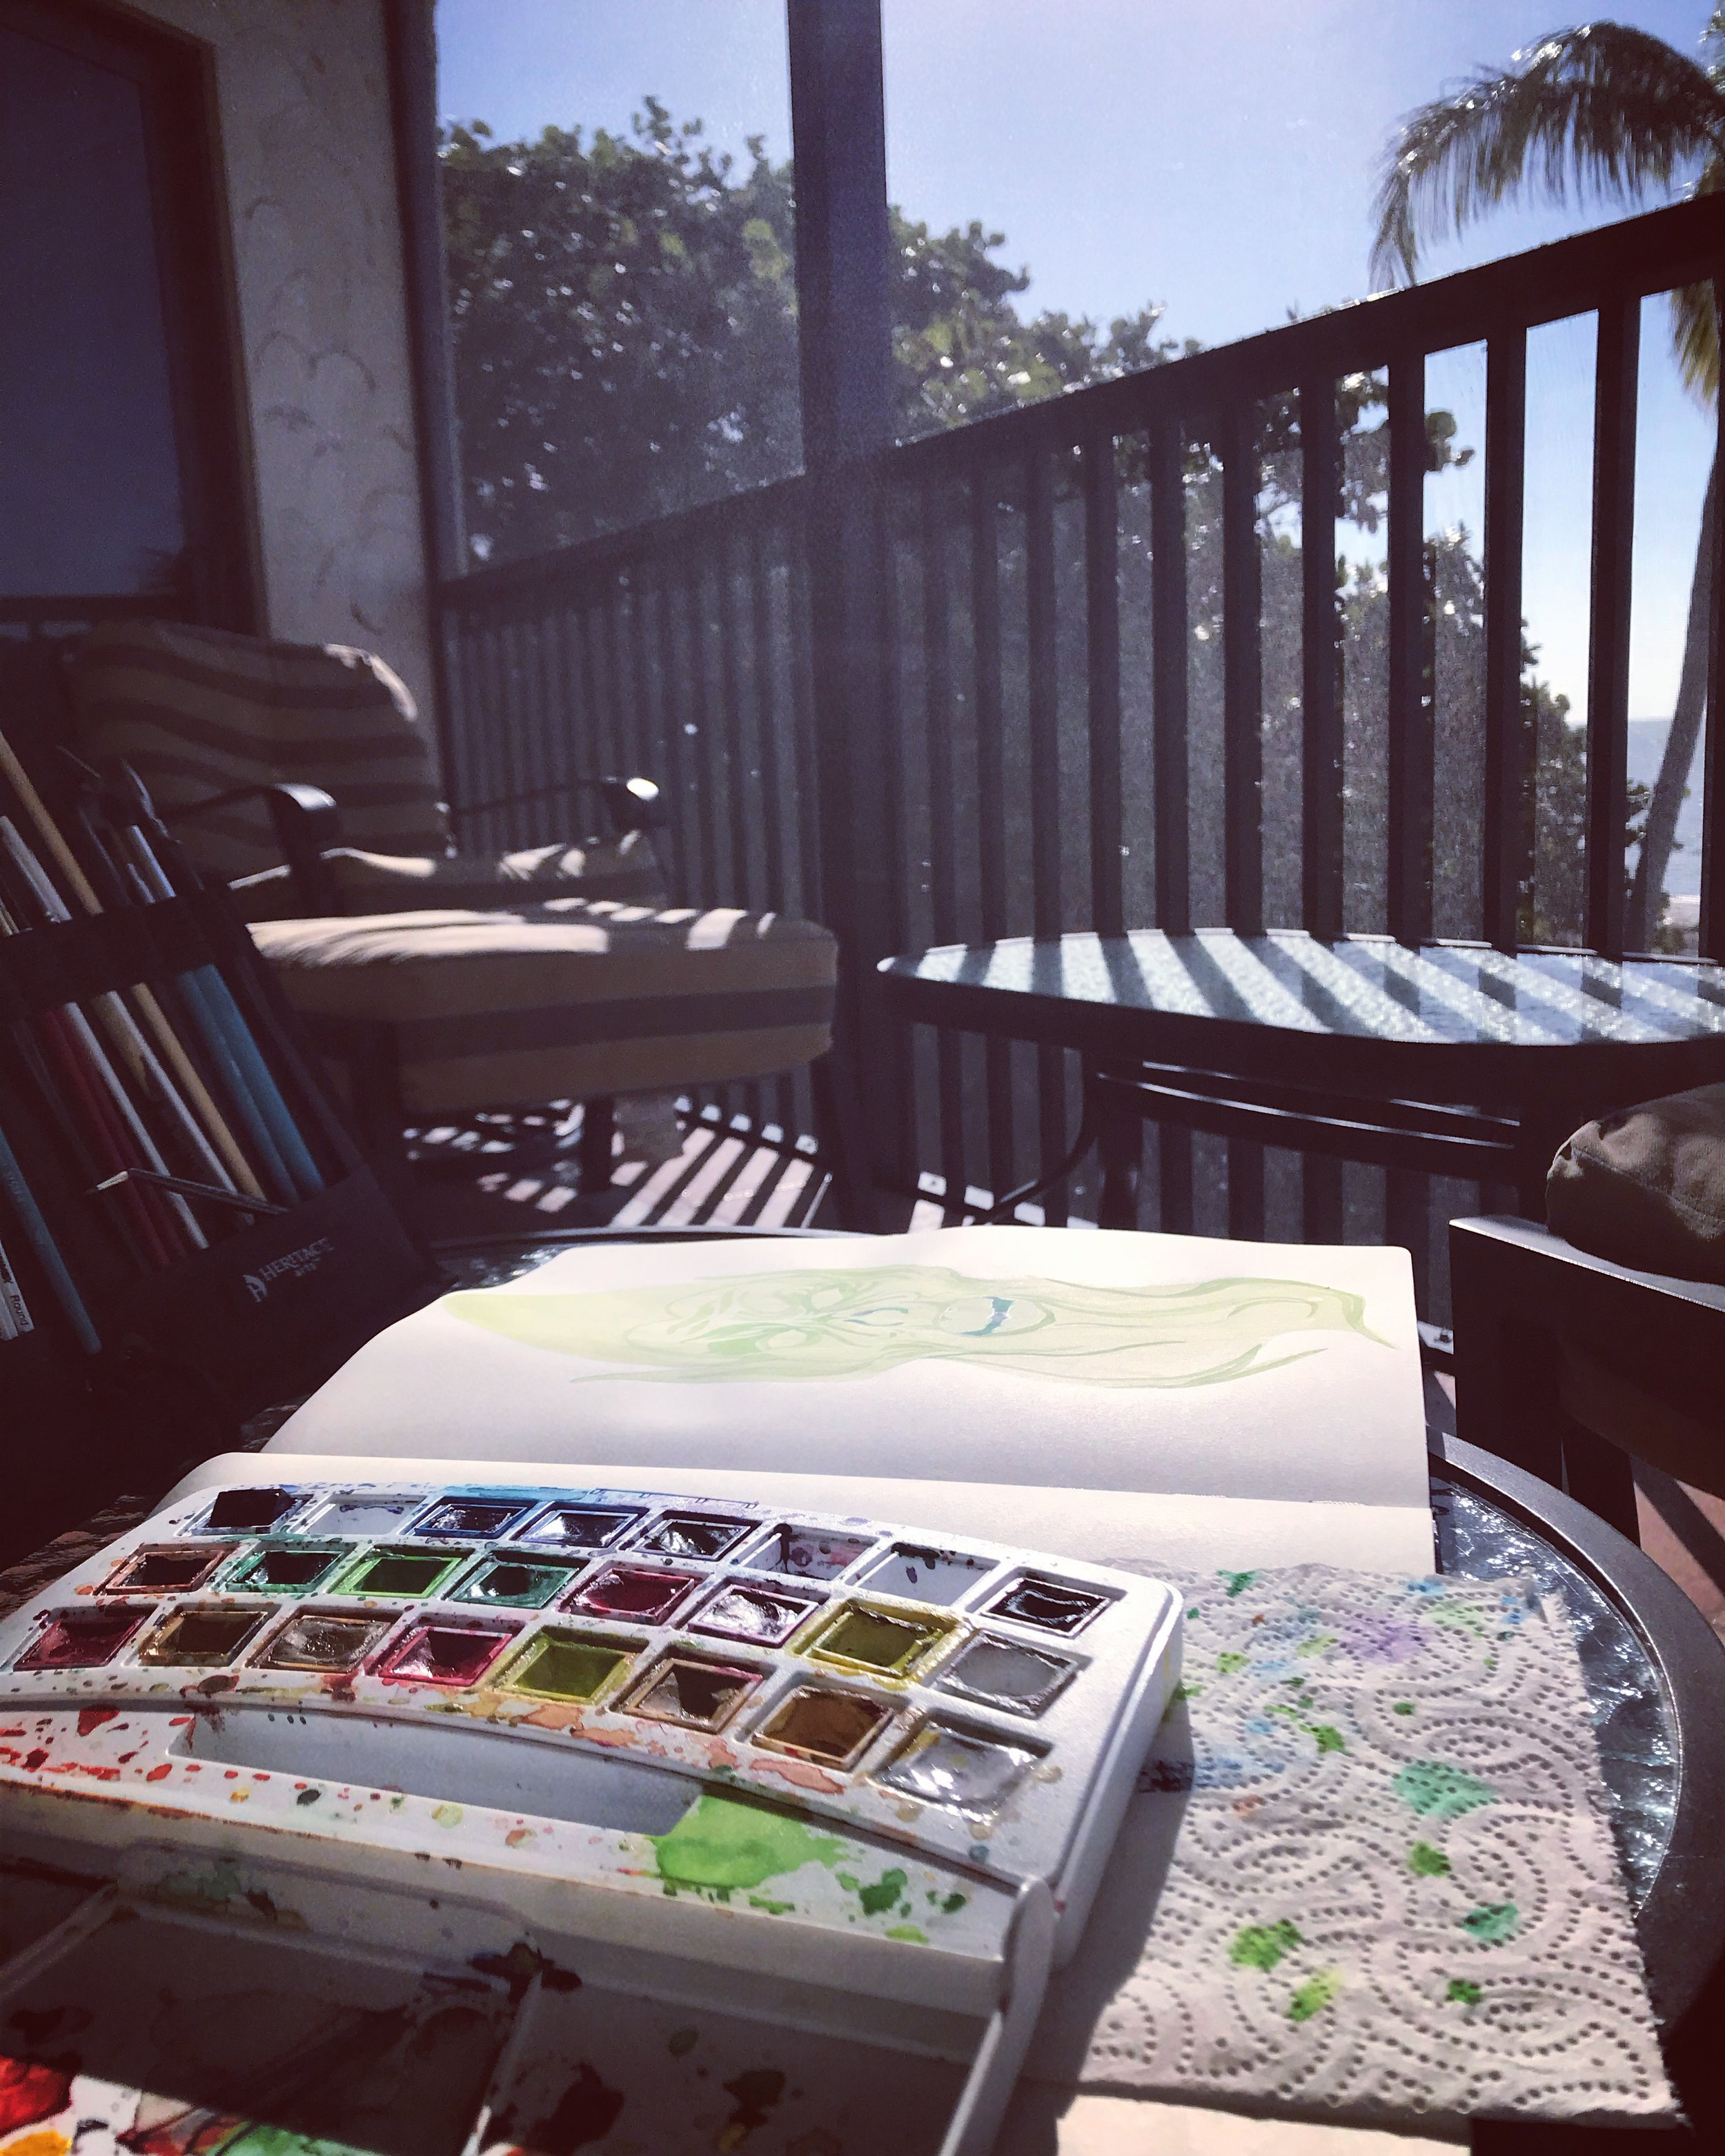 Painting on the balcony overlooking the Gulf of Mexico, January 2018.